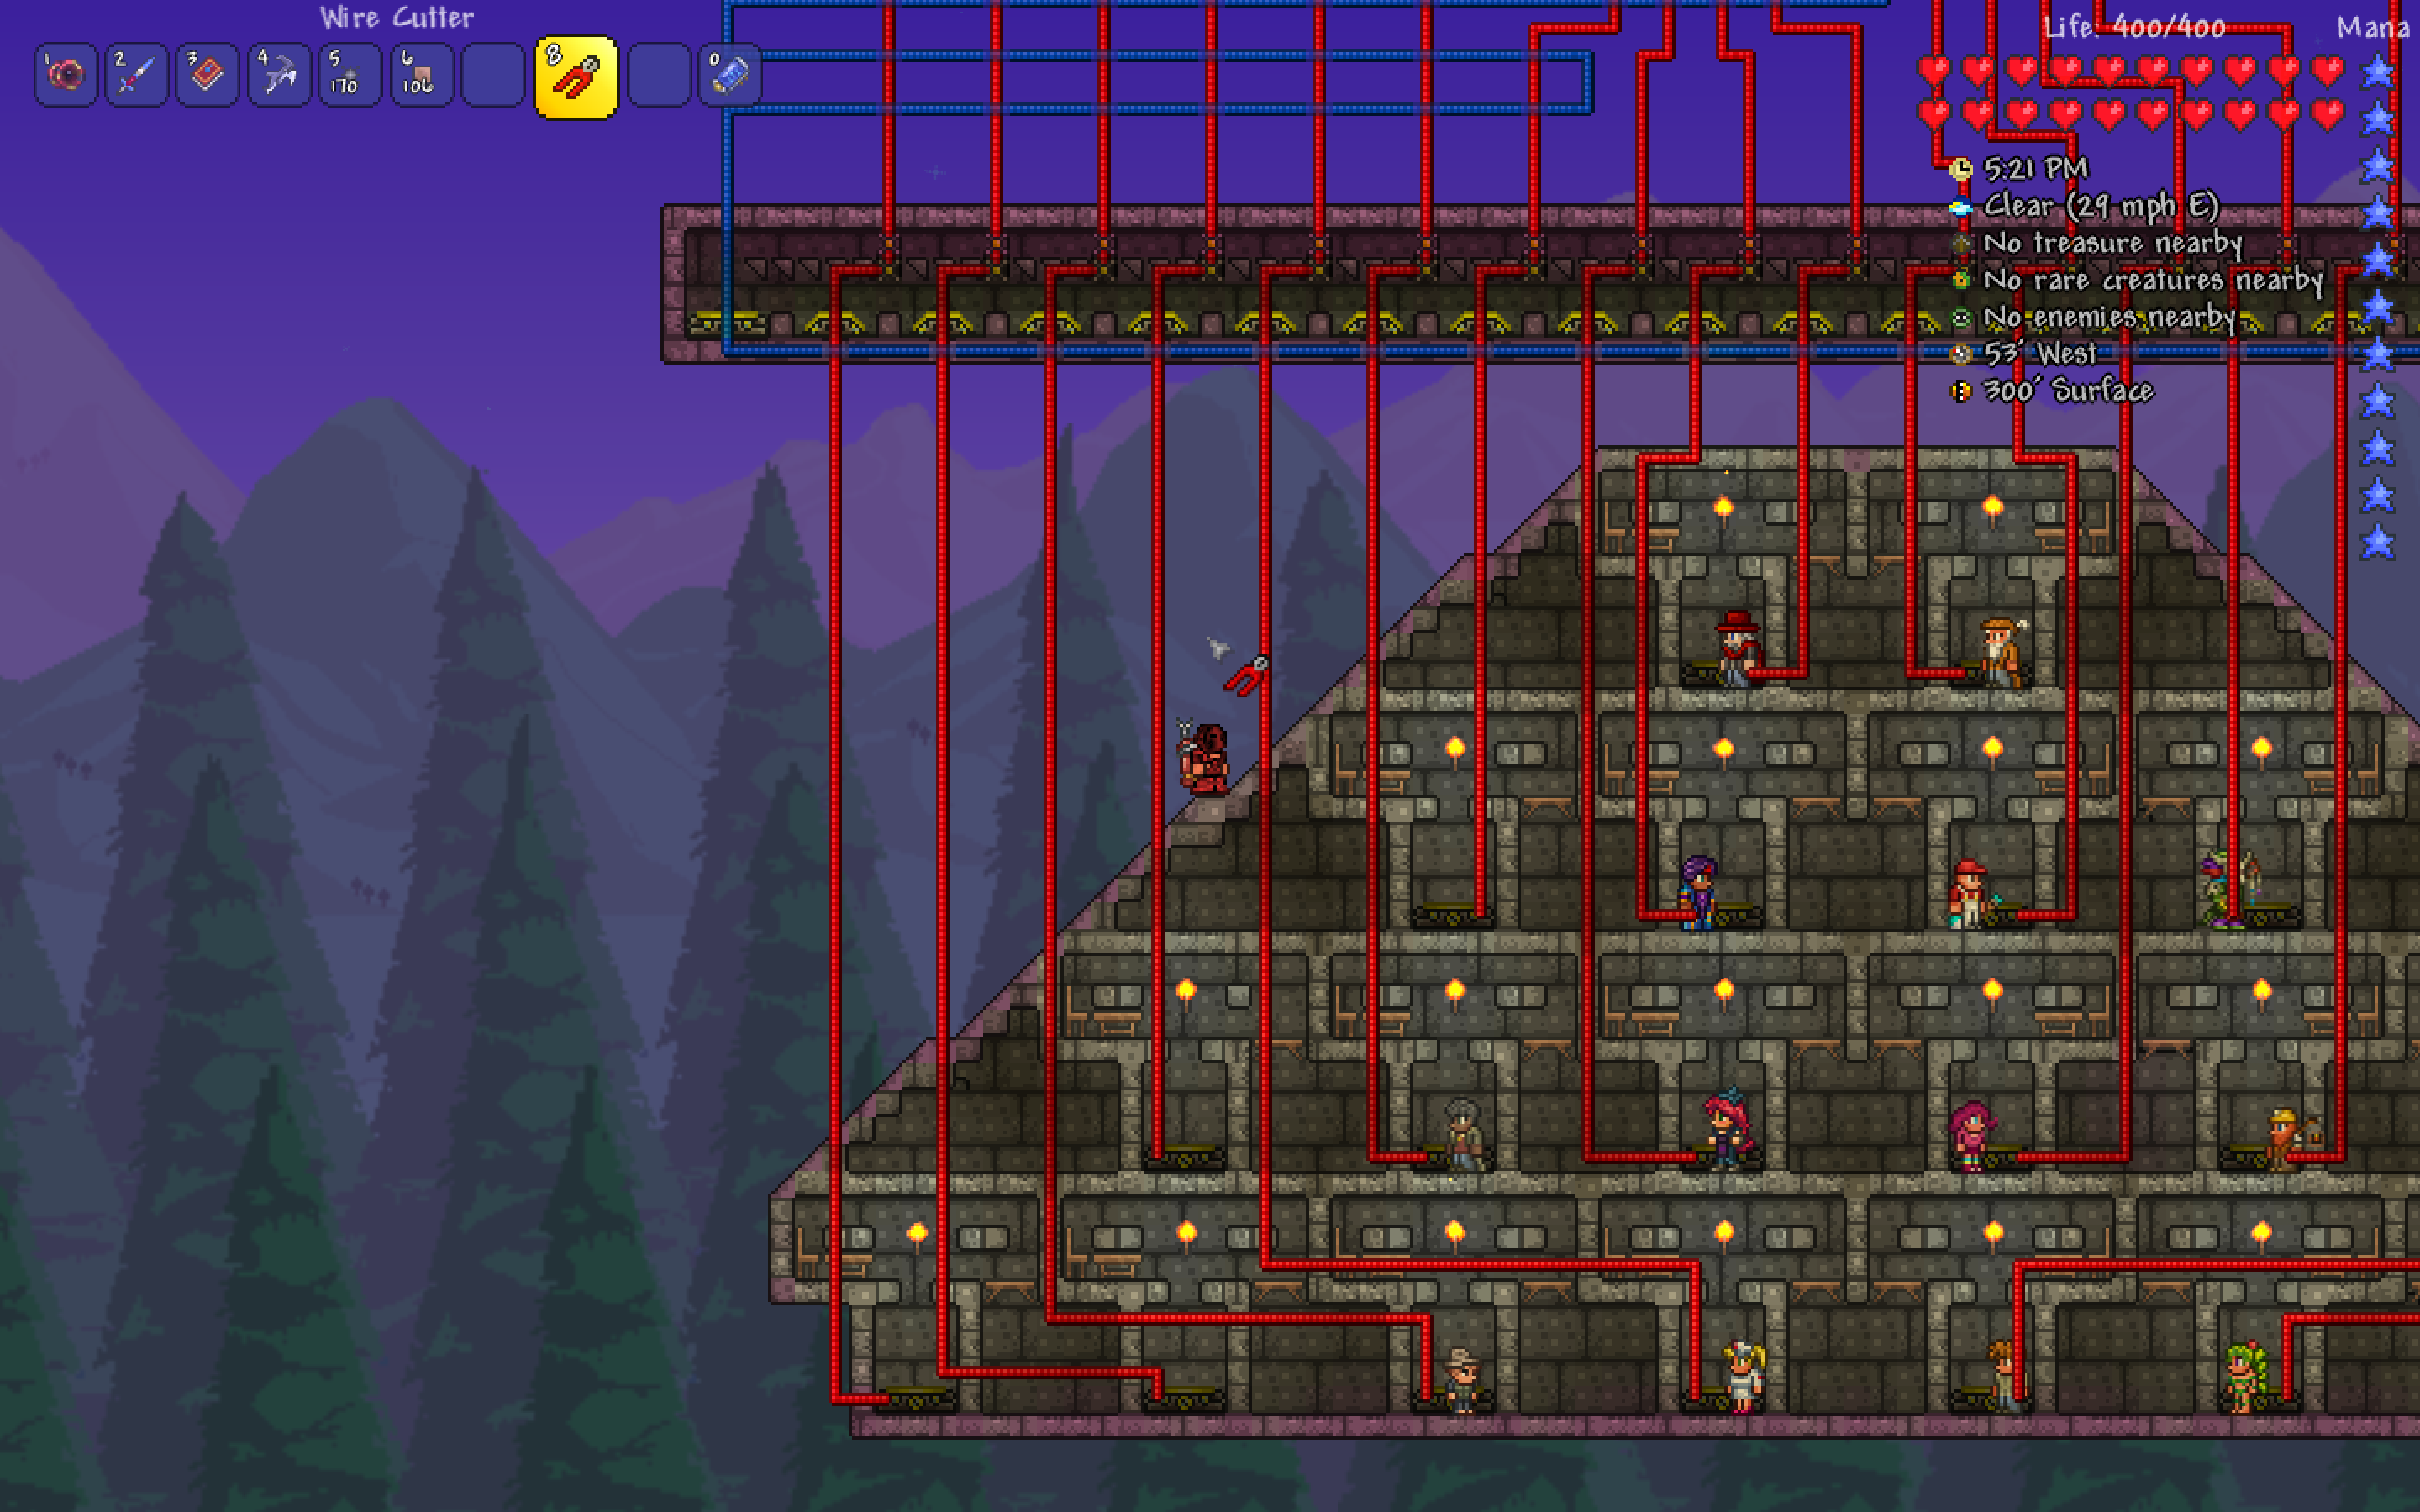 Guide Project Npc Dispenser Terraria Community Forums No i've played terraria for __ hours posts will be allowed anymore. guide project npc dispenser